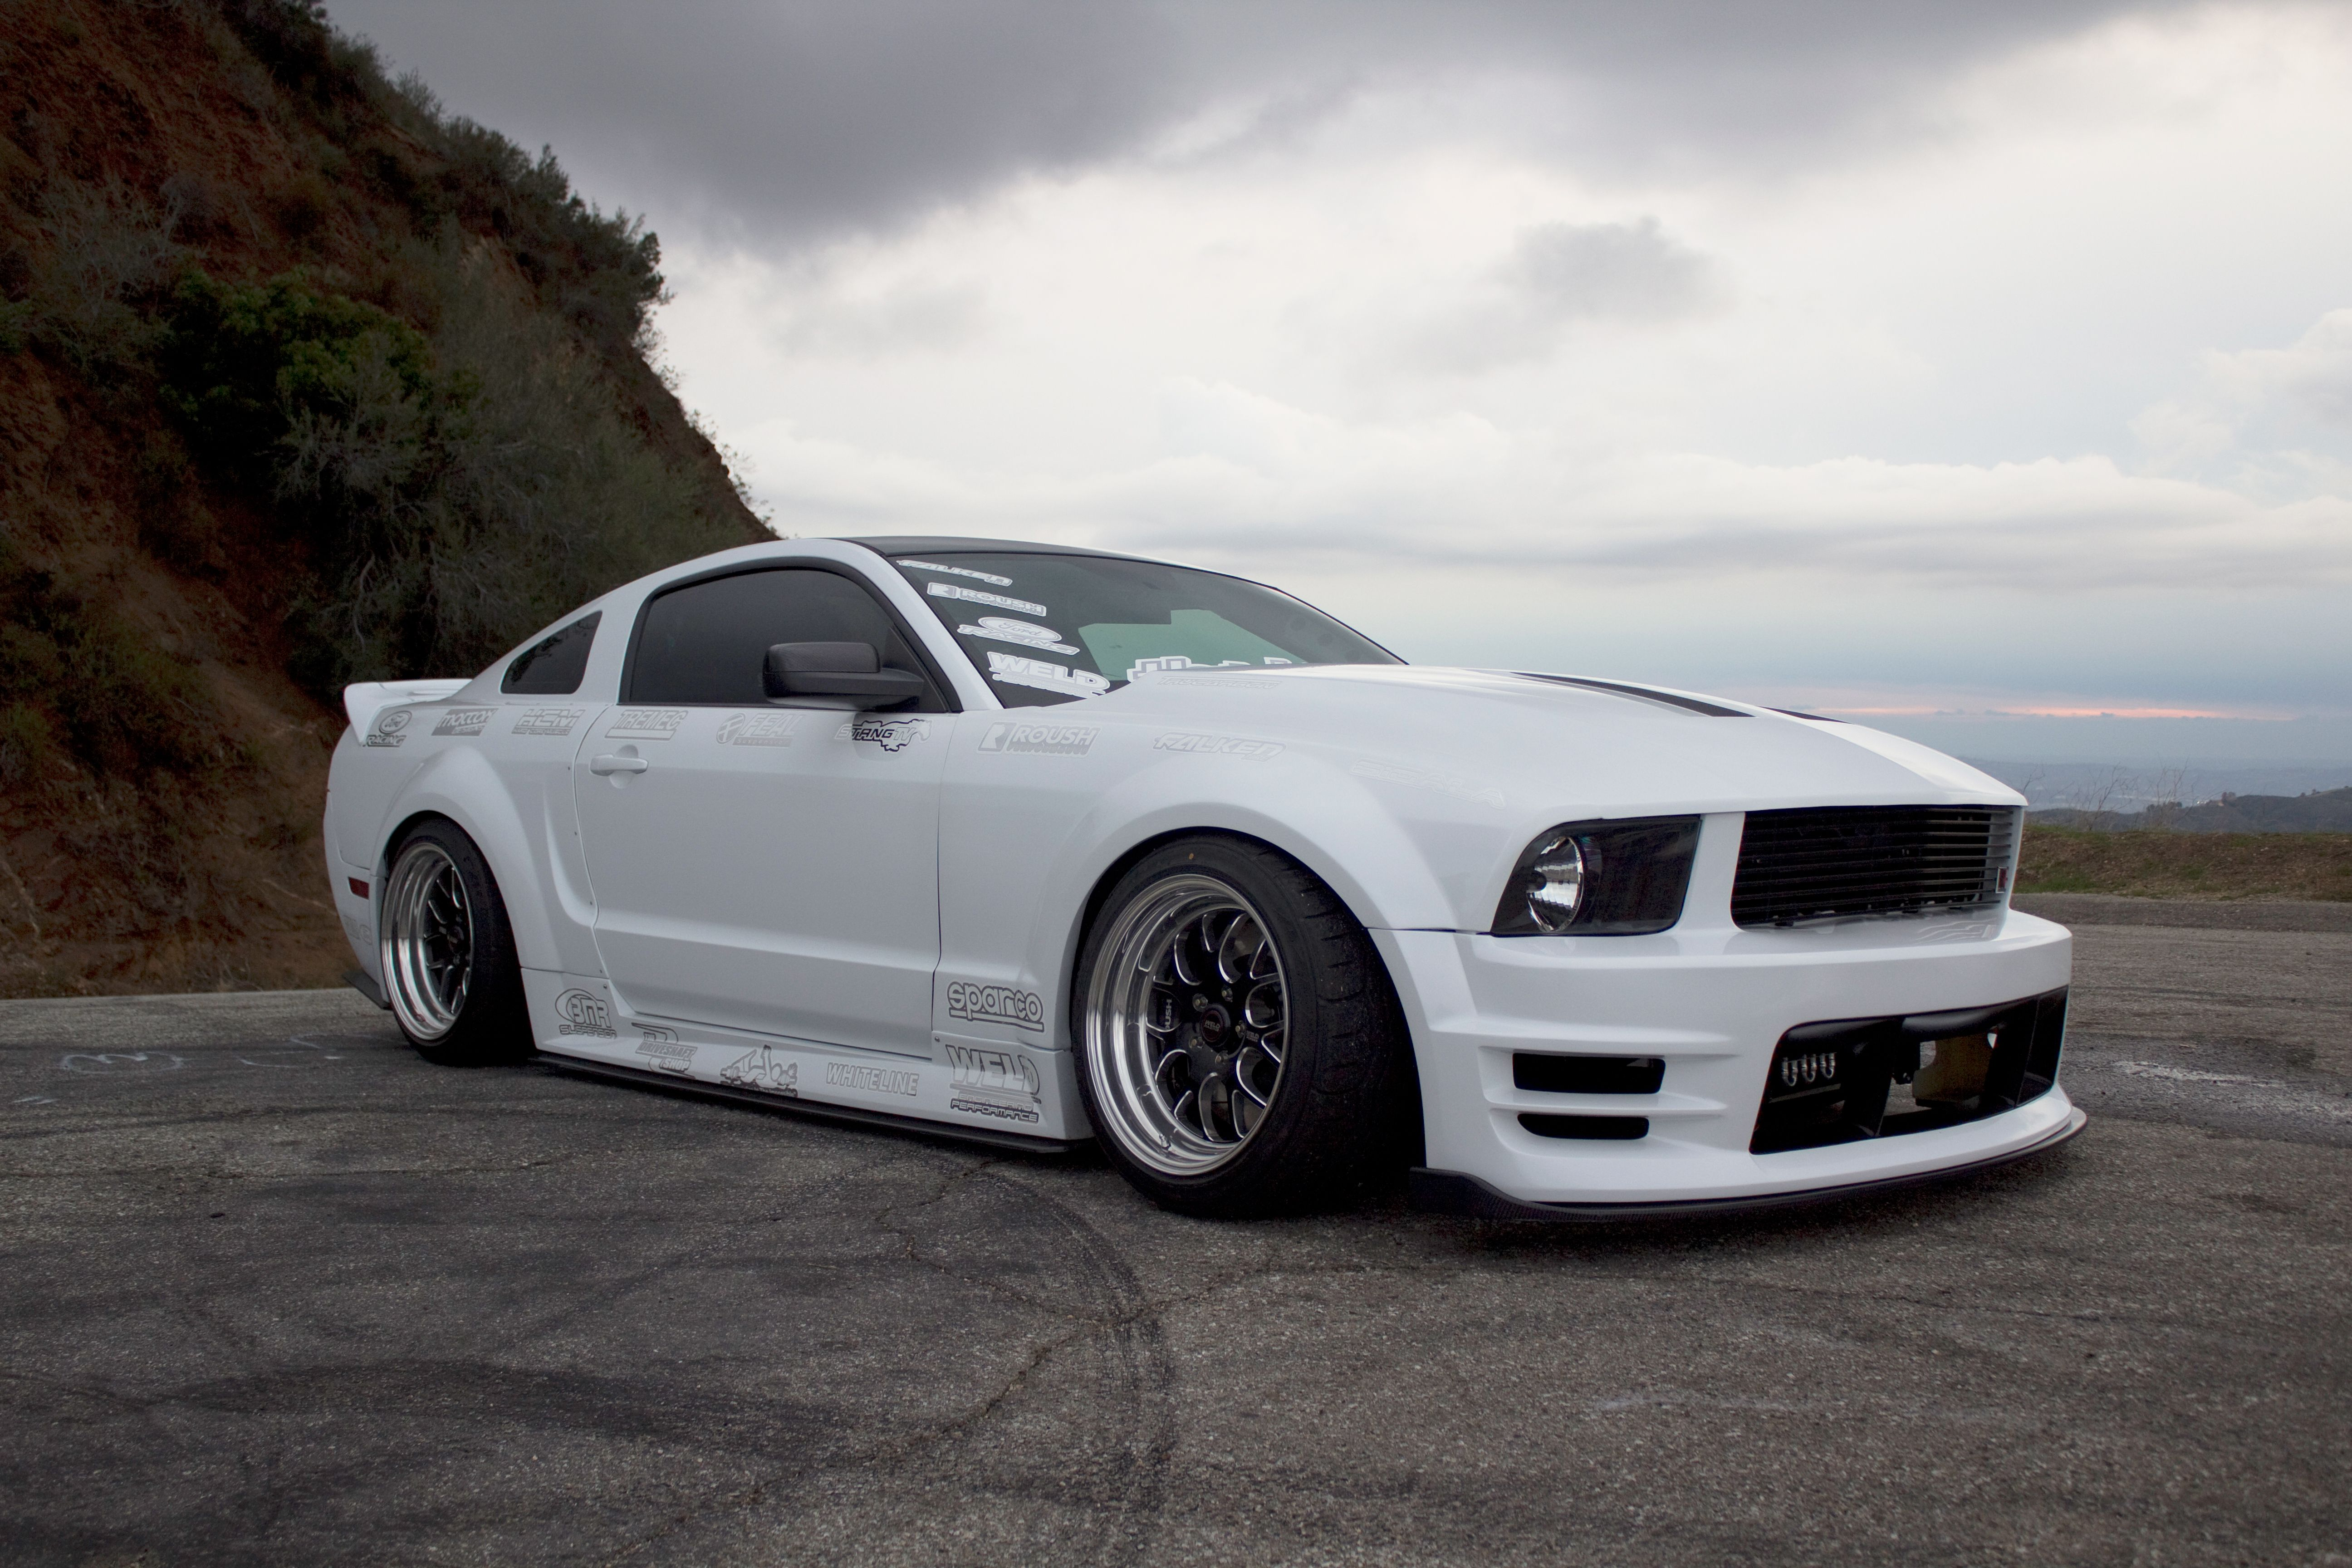 Choosing The Right Lowering Solution For Your Mustang - Choosing The Right Lowering Solution For Your Mustang